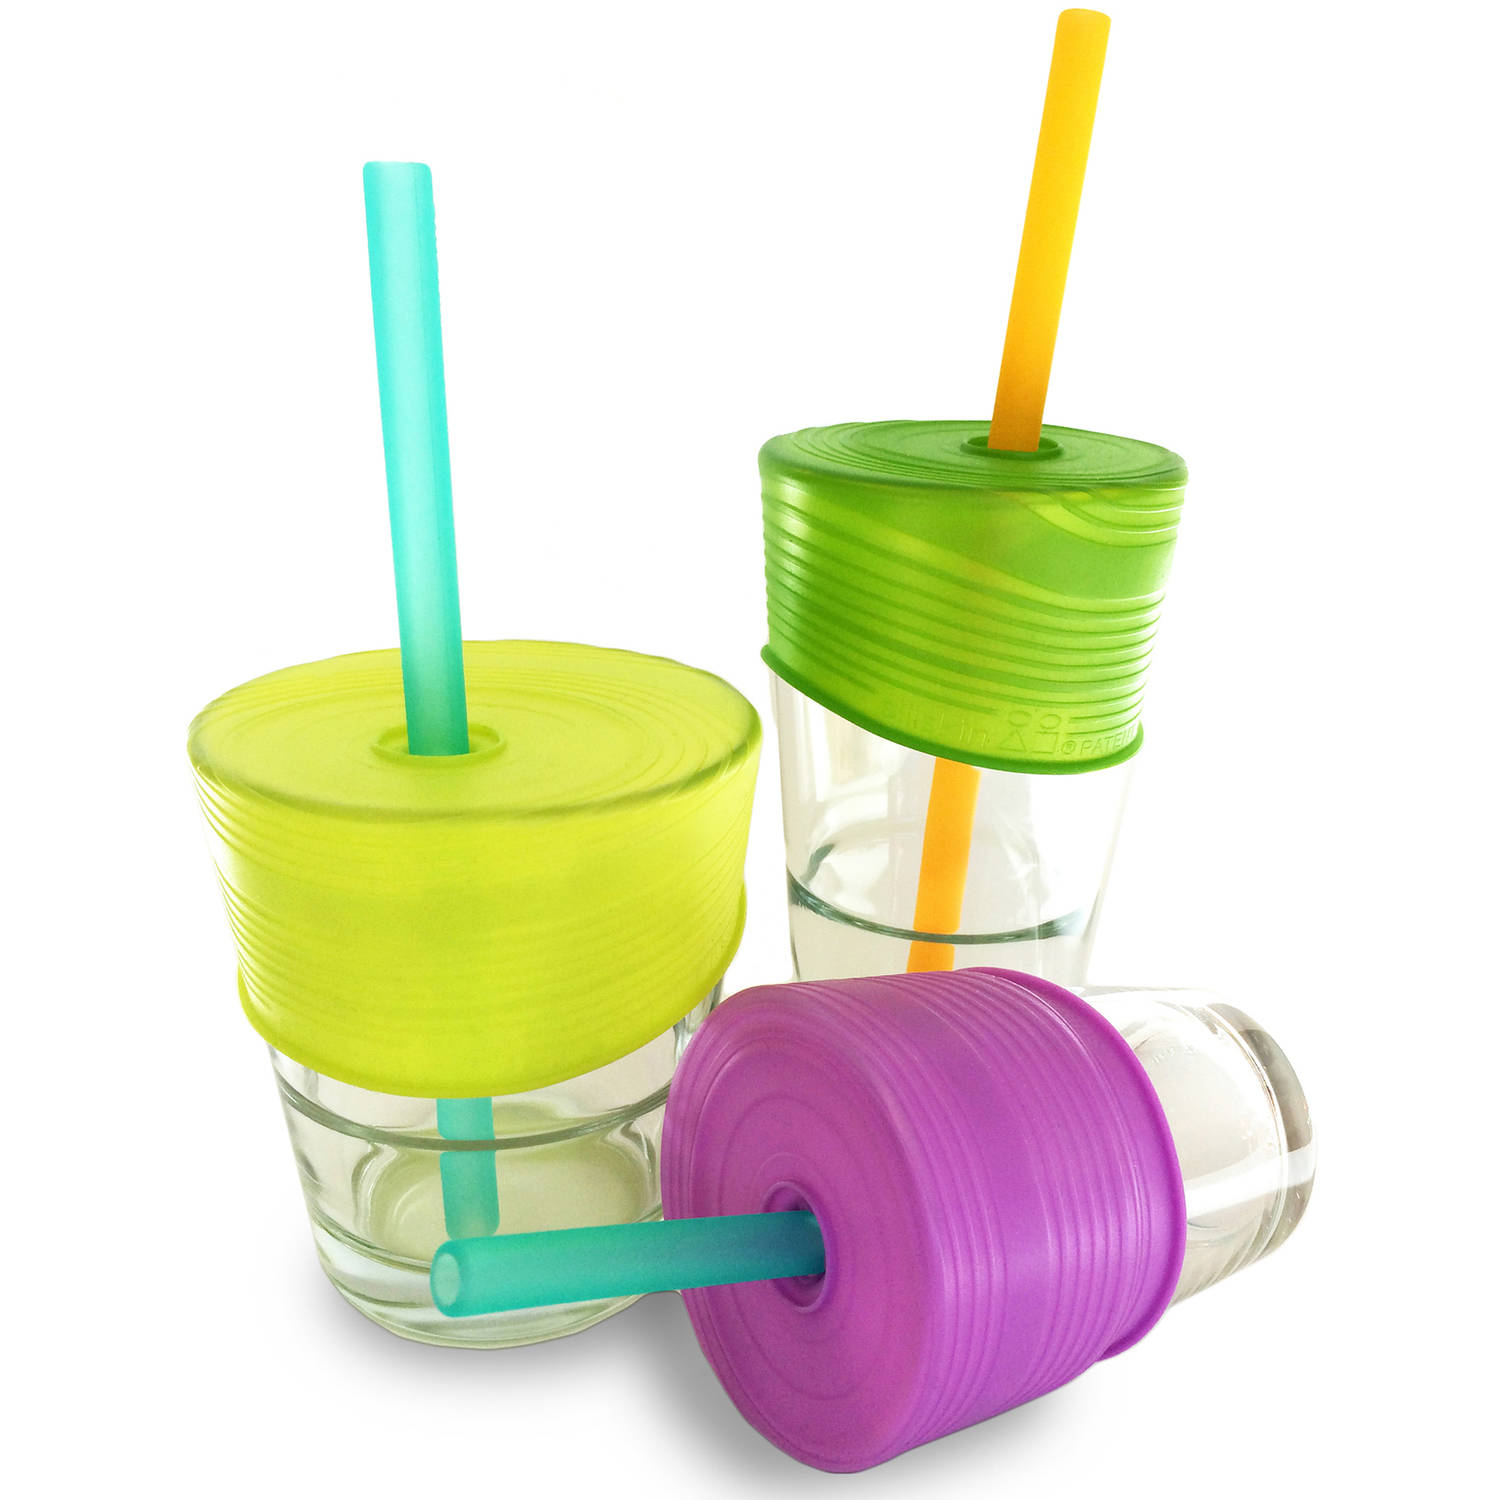 Siliskin Straw Lids for Sippy Cups - Silicone, 3 pack